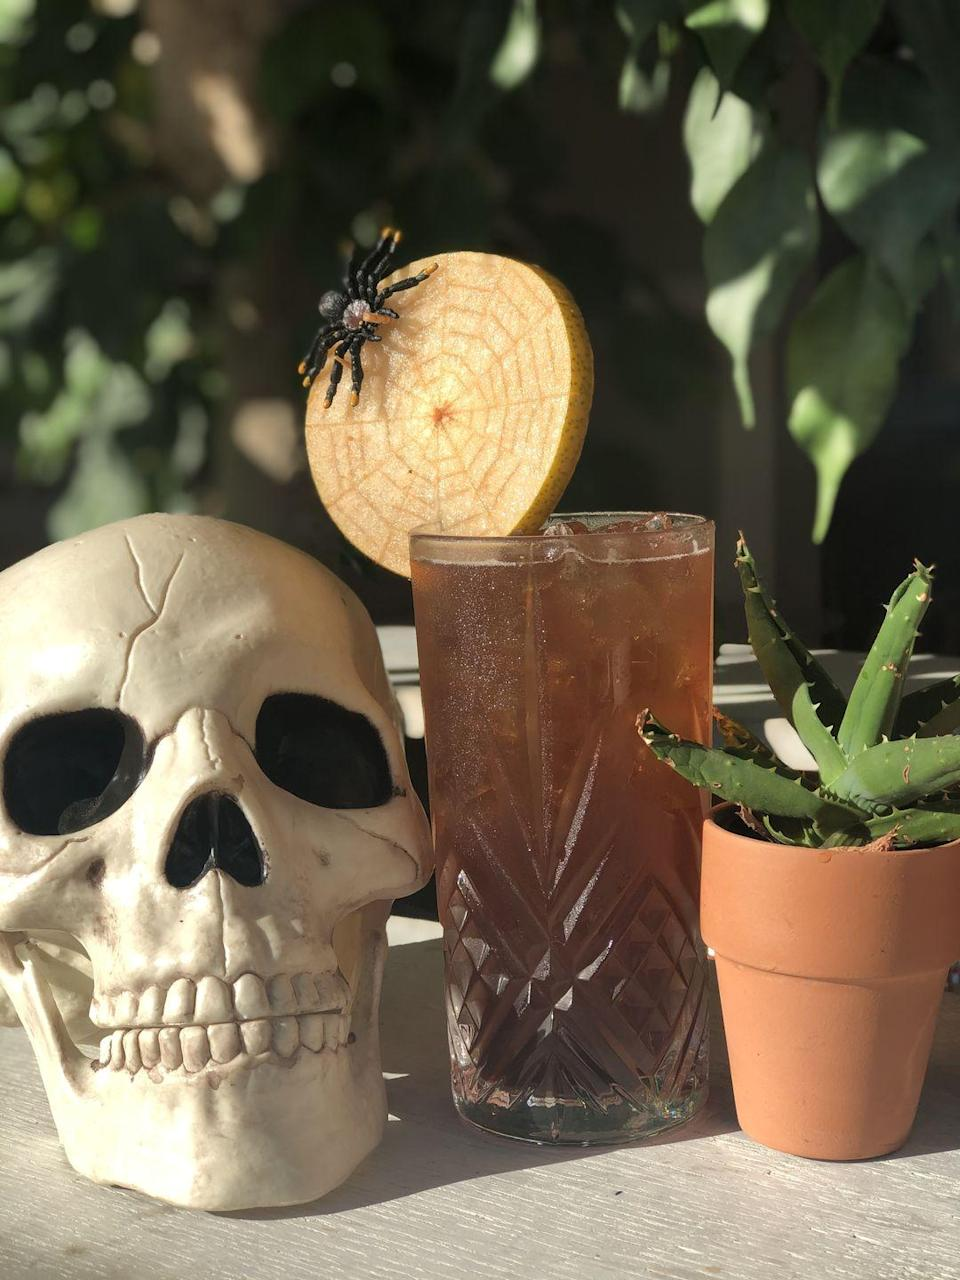 "<p><strong>Ingredients</strong></p><p>1 oz Dark Rum (such as El Dorado)<br>1 oz Cynar<br>.5 oz St. Elizabeth Allspice Dram<br>Ginger Beer to top</p><p><strong>Instructions</strong></p><p>Shake the spirits with ice. Pour the chilled spirits into a highball glass packed with ice and top with Ginger Beer. For garnish, carve spider web pattern into a slice of Asian pear and cover with bitters to emphasize pattern. </p><p><em>By Erin Scala of <a href=""https://www.commonhouse.com/"" rel=""nofollow noopener"" target=""_blank"" data-ylk=""slk:Common House"" class=""link rapid-noclick-resp"">Common House</a>.</em></p>"